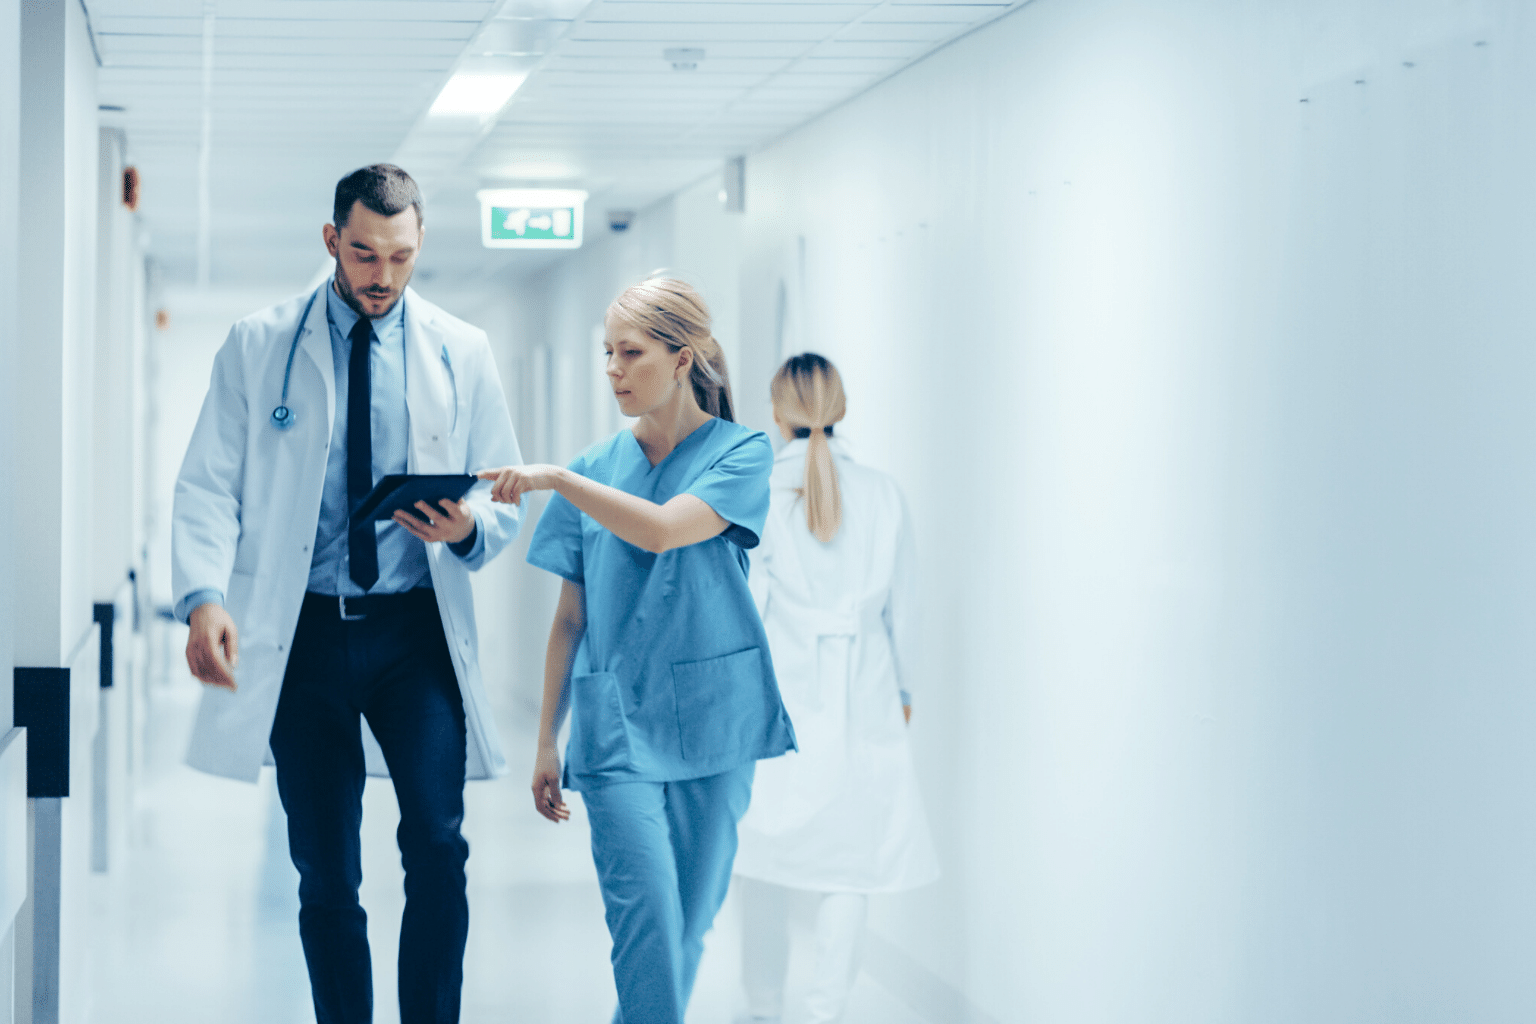 Clinicians in the hospital hallway